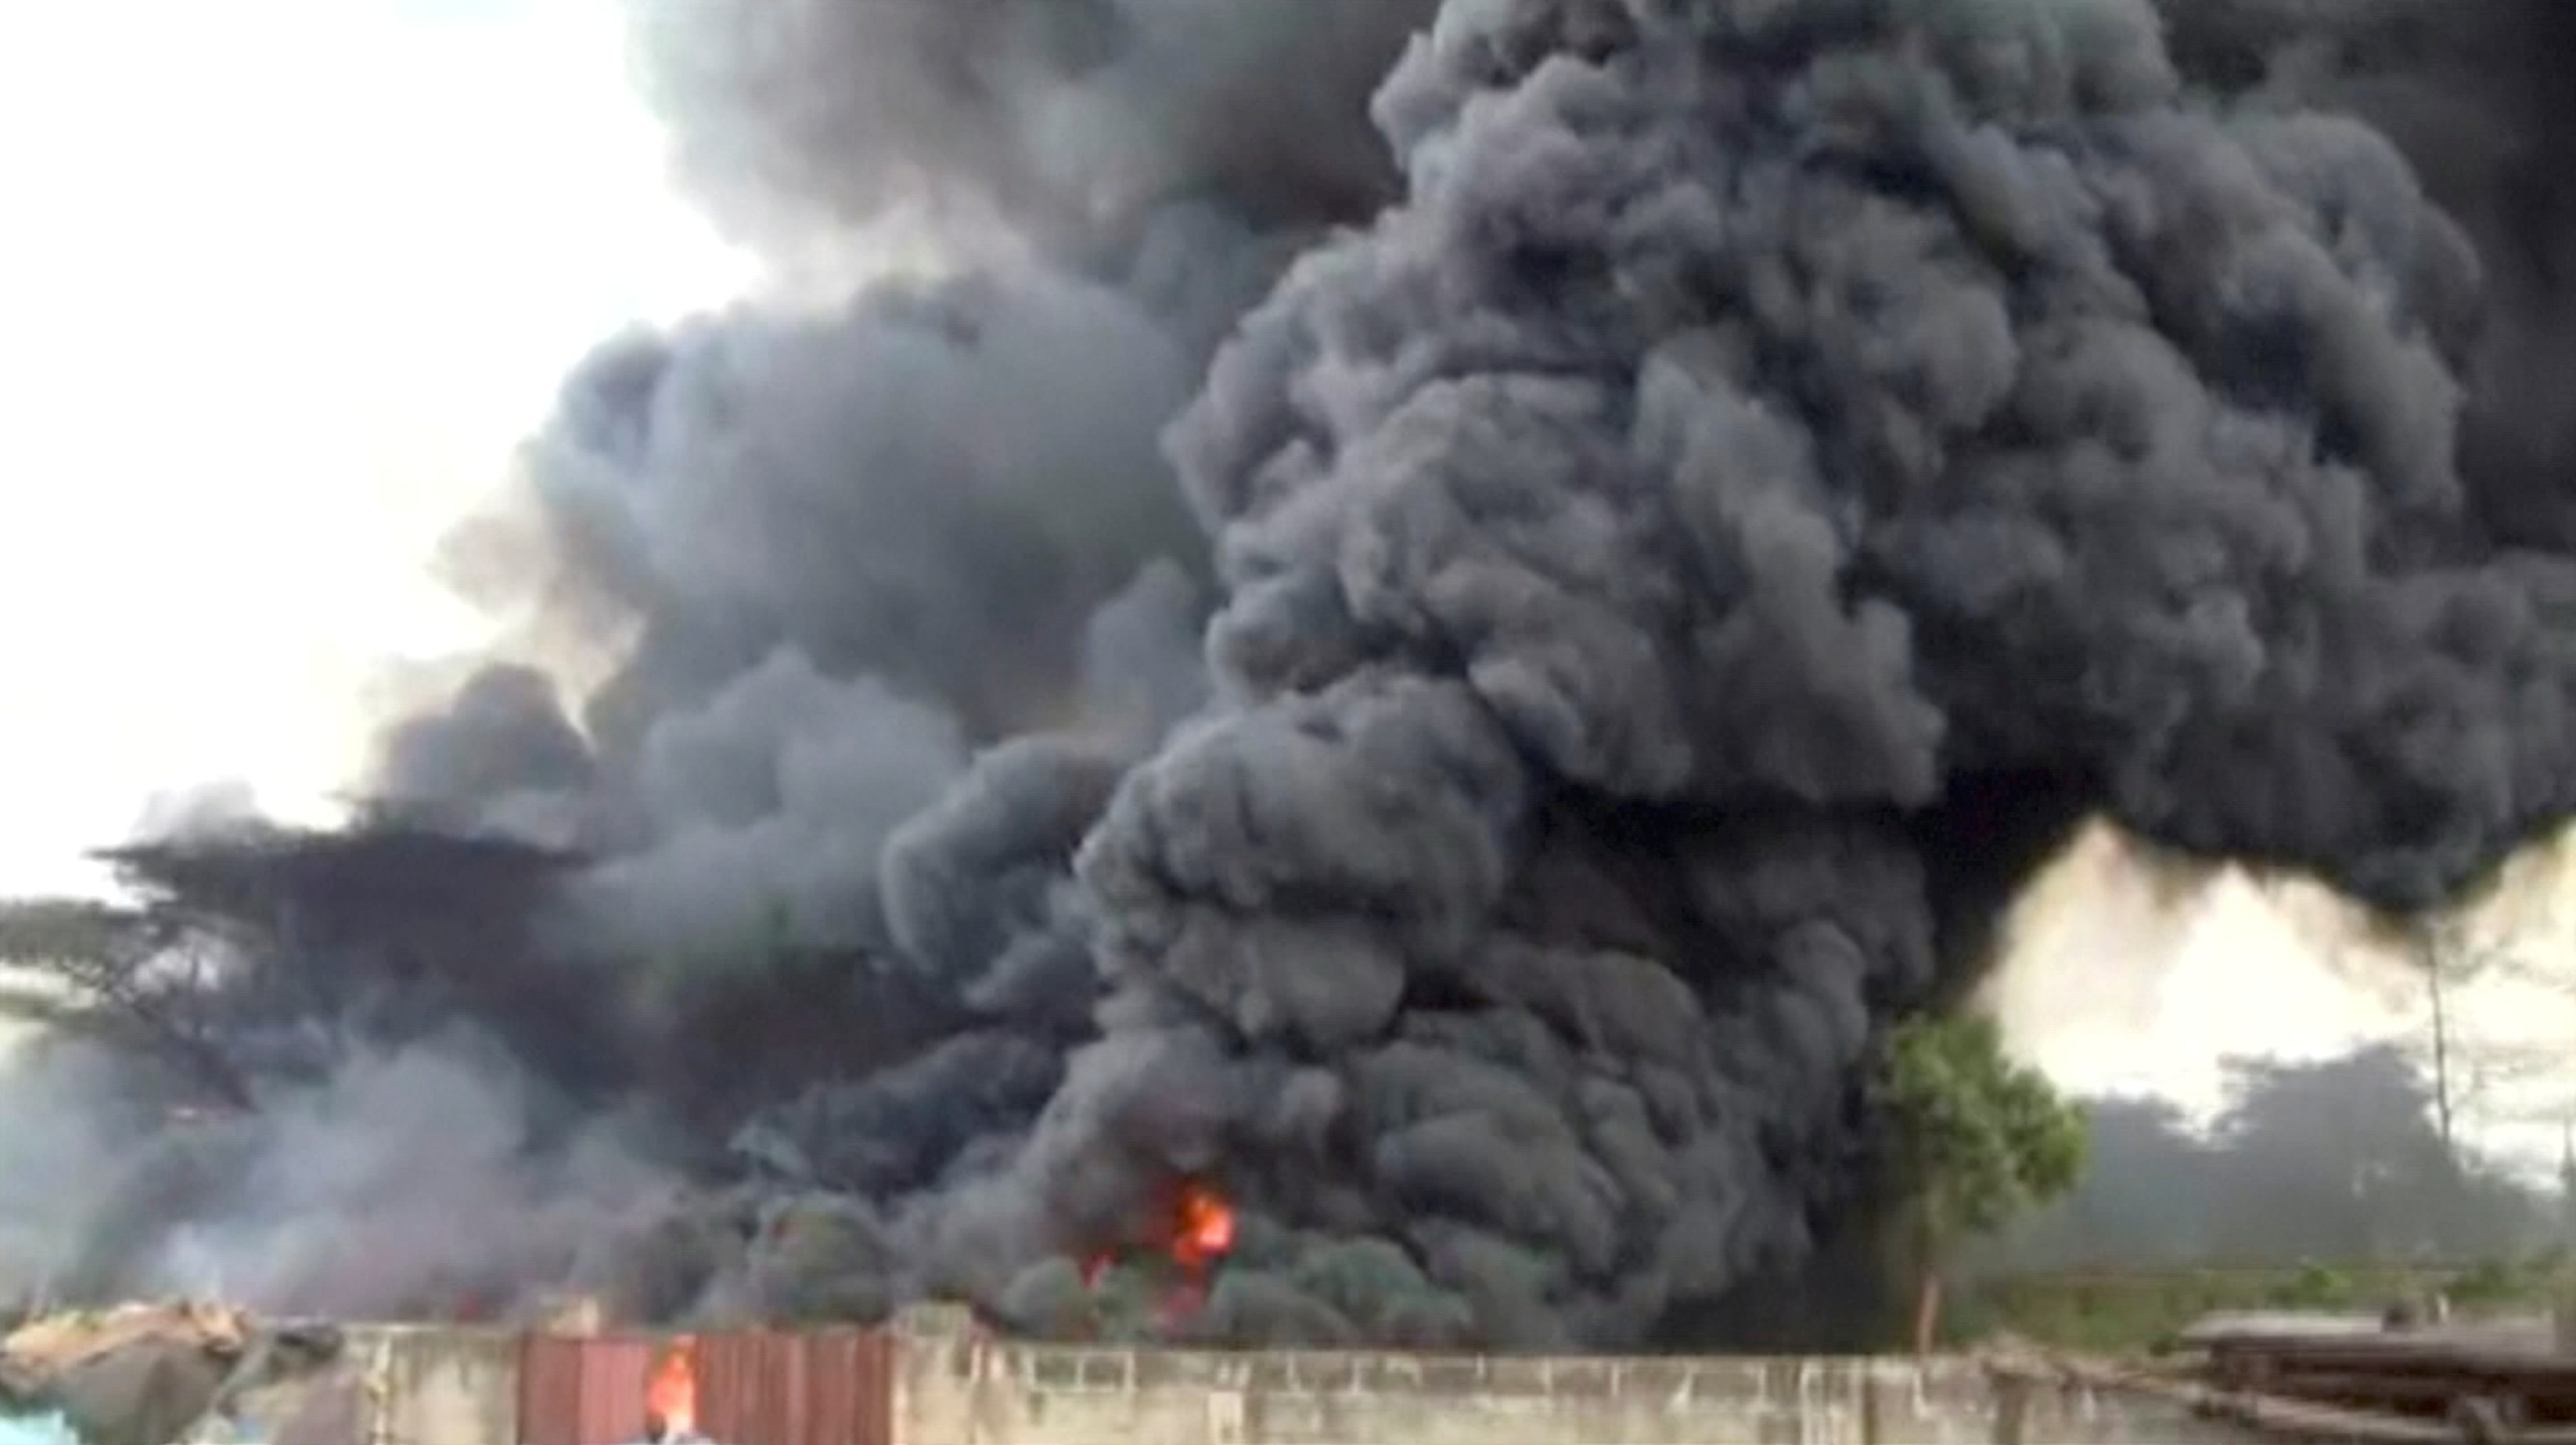 Smoke billows into air following an explosion of a fuel tanker in Morogoro, Tanzania August 10, 2019.